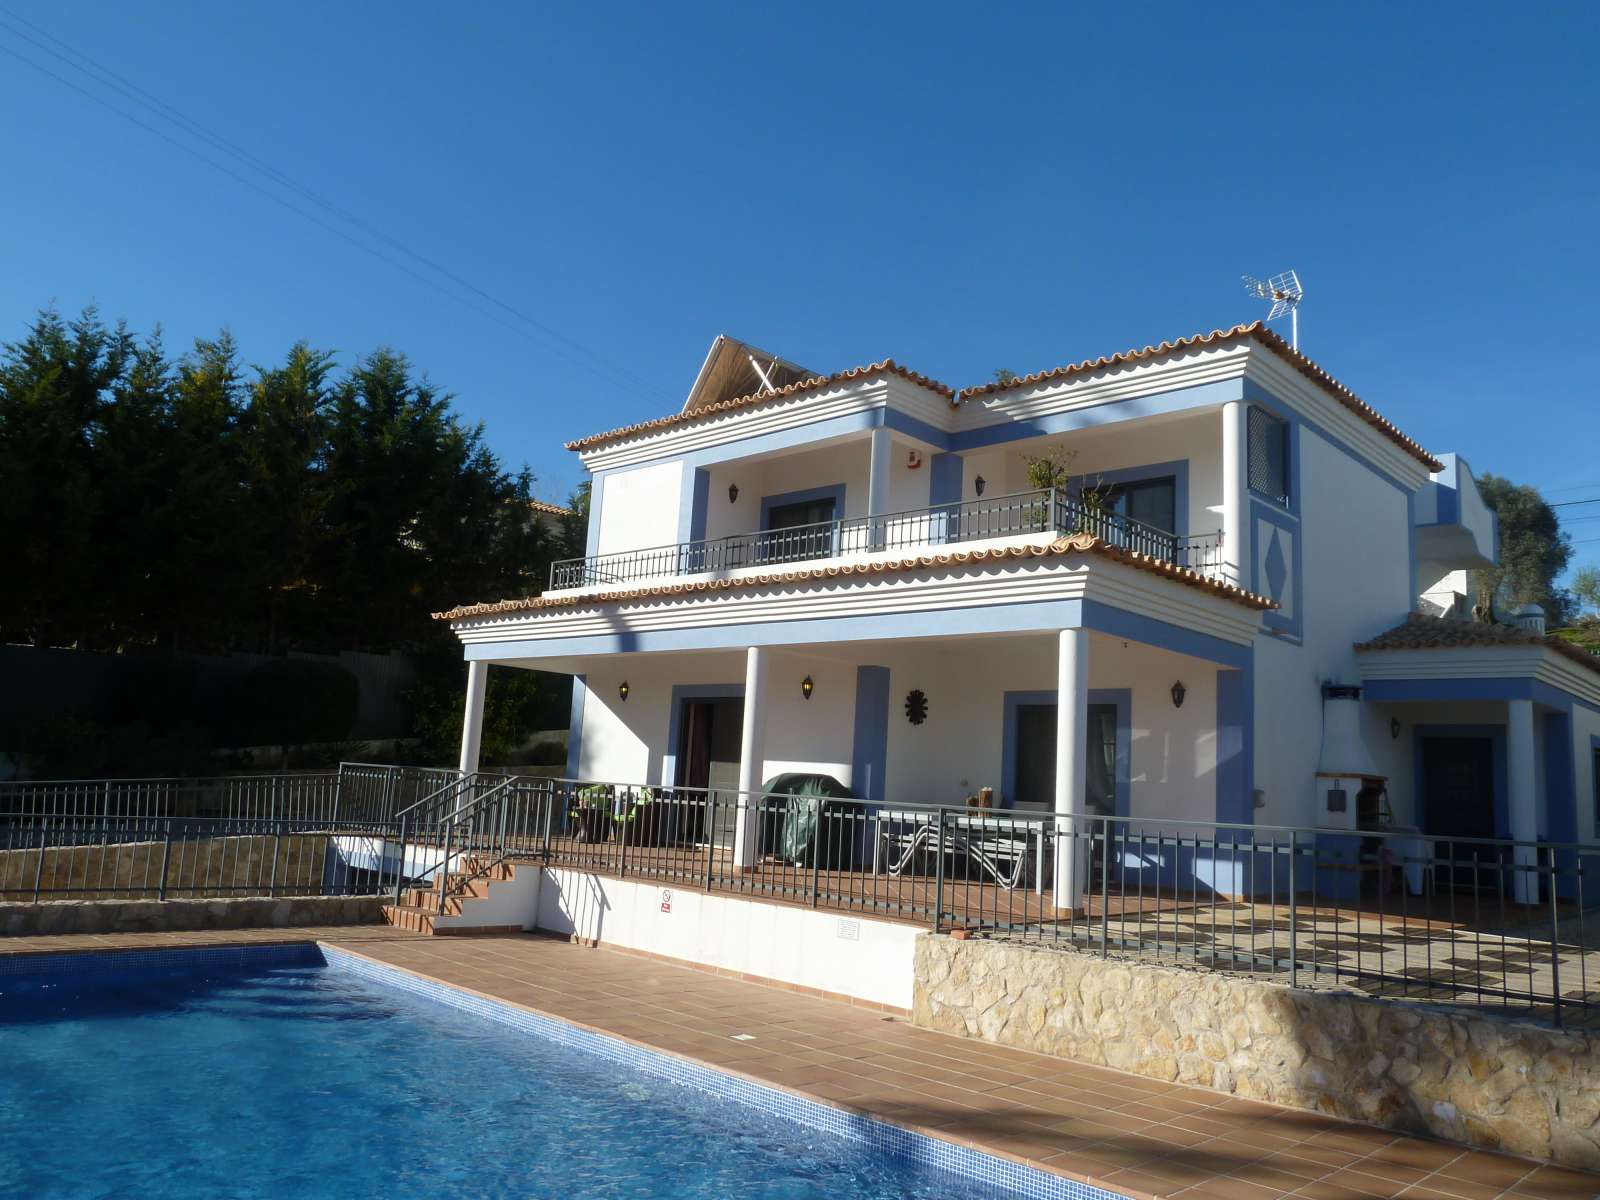 Villa Rental Boliqueime - Contact the owners direct ( P32629 )